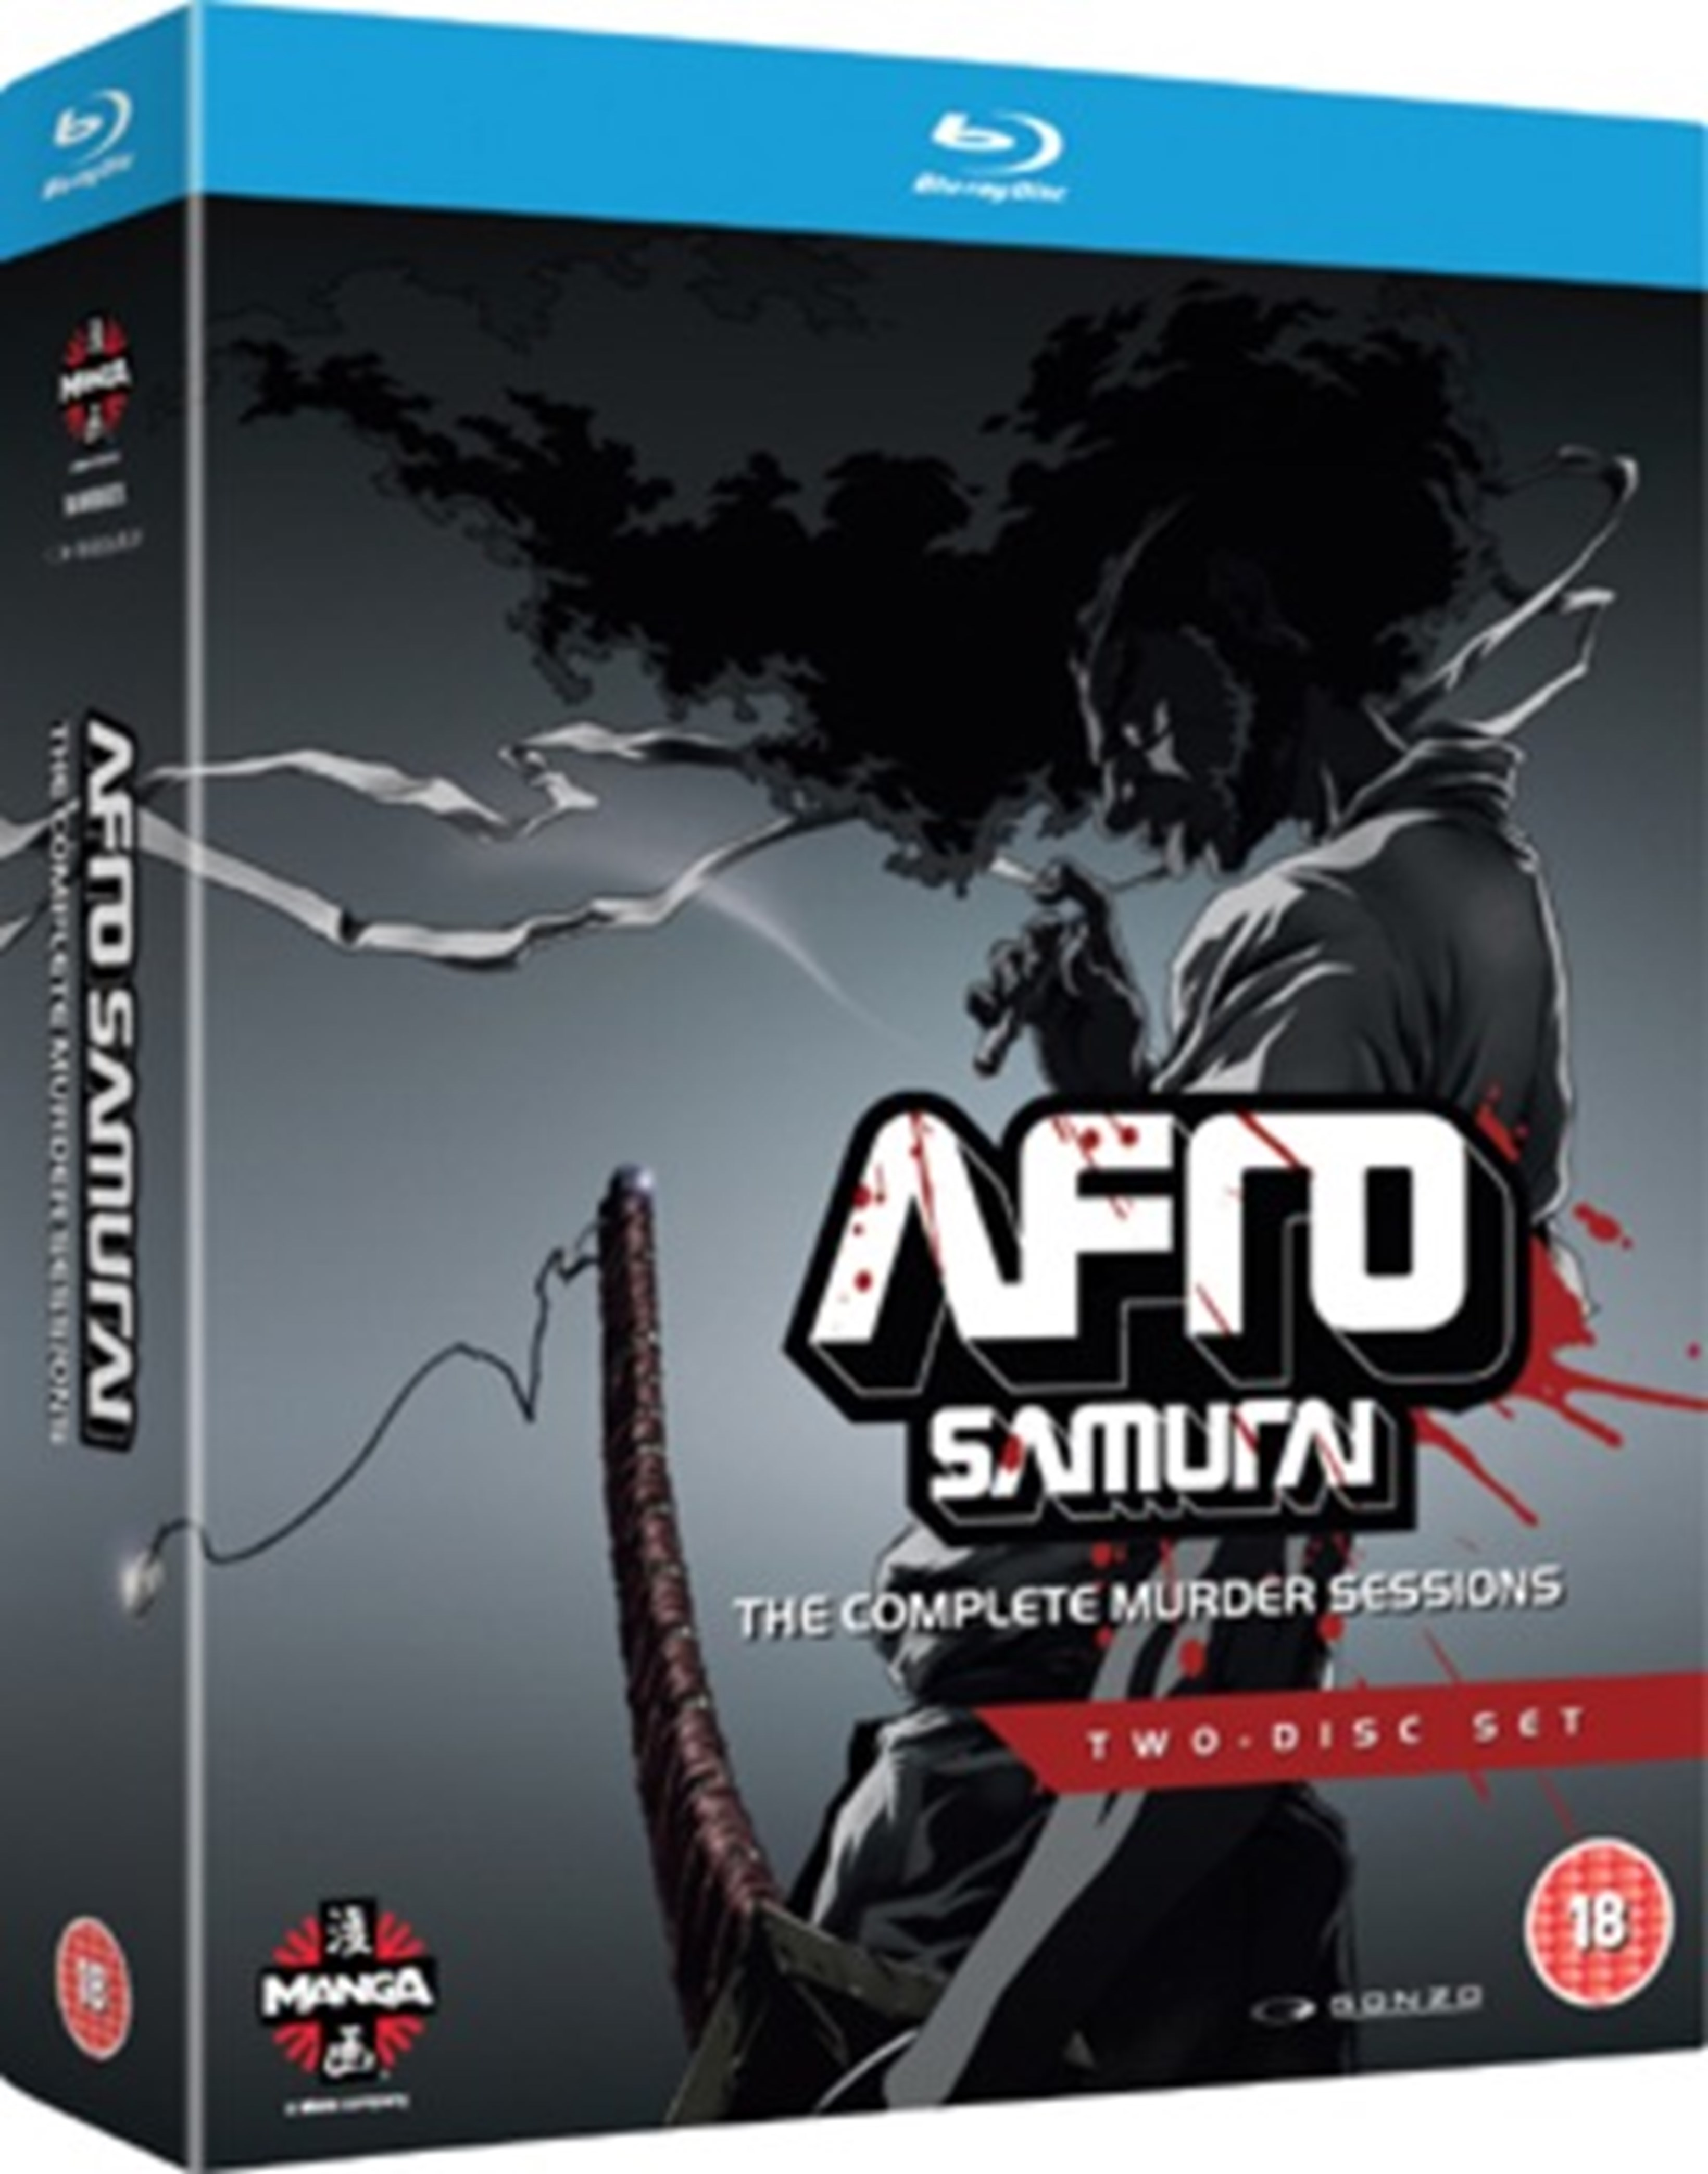 Afro Samurai: The Complete Murder Sessions - 1